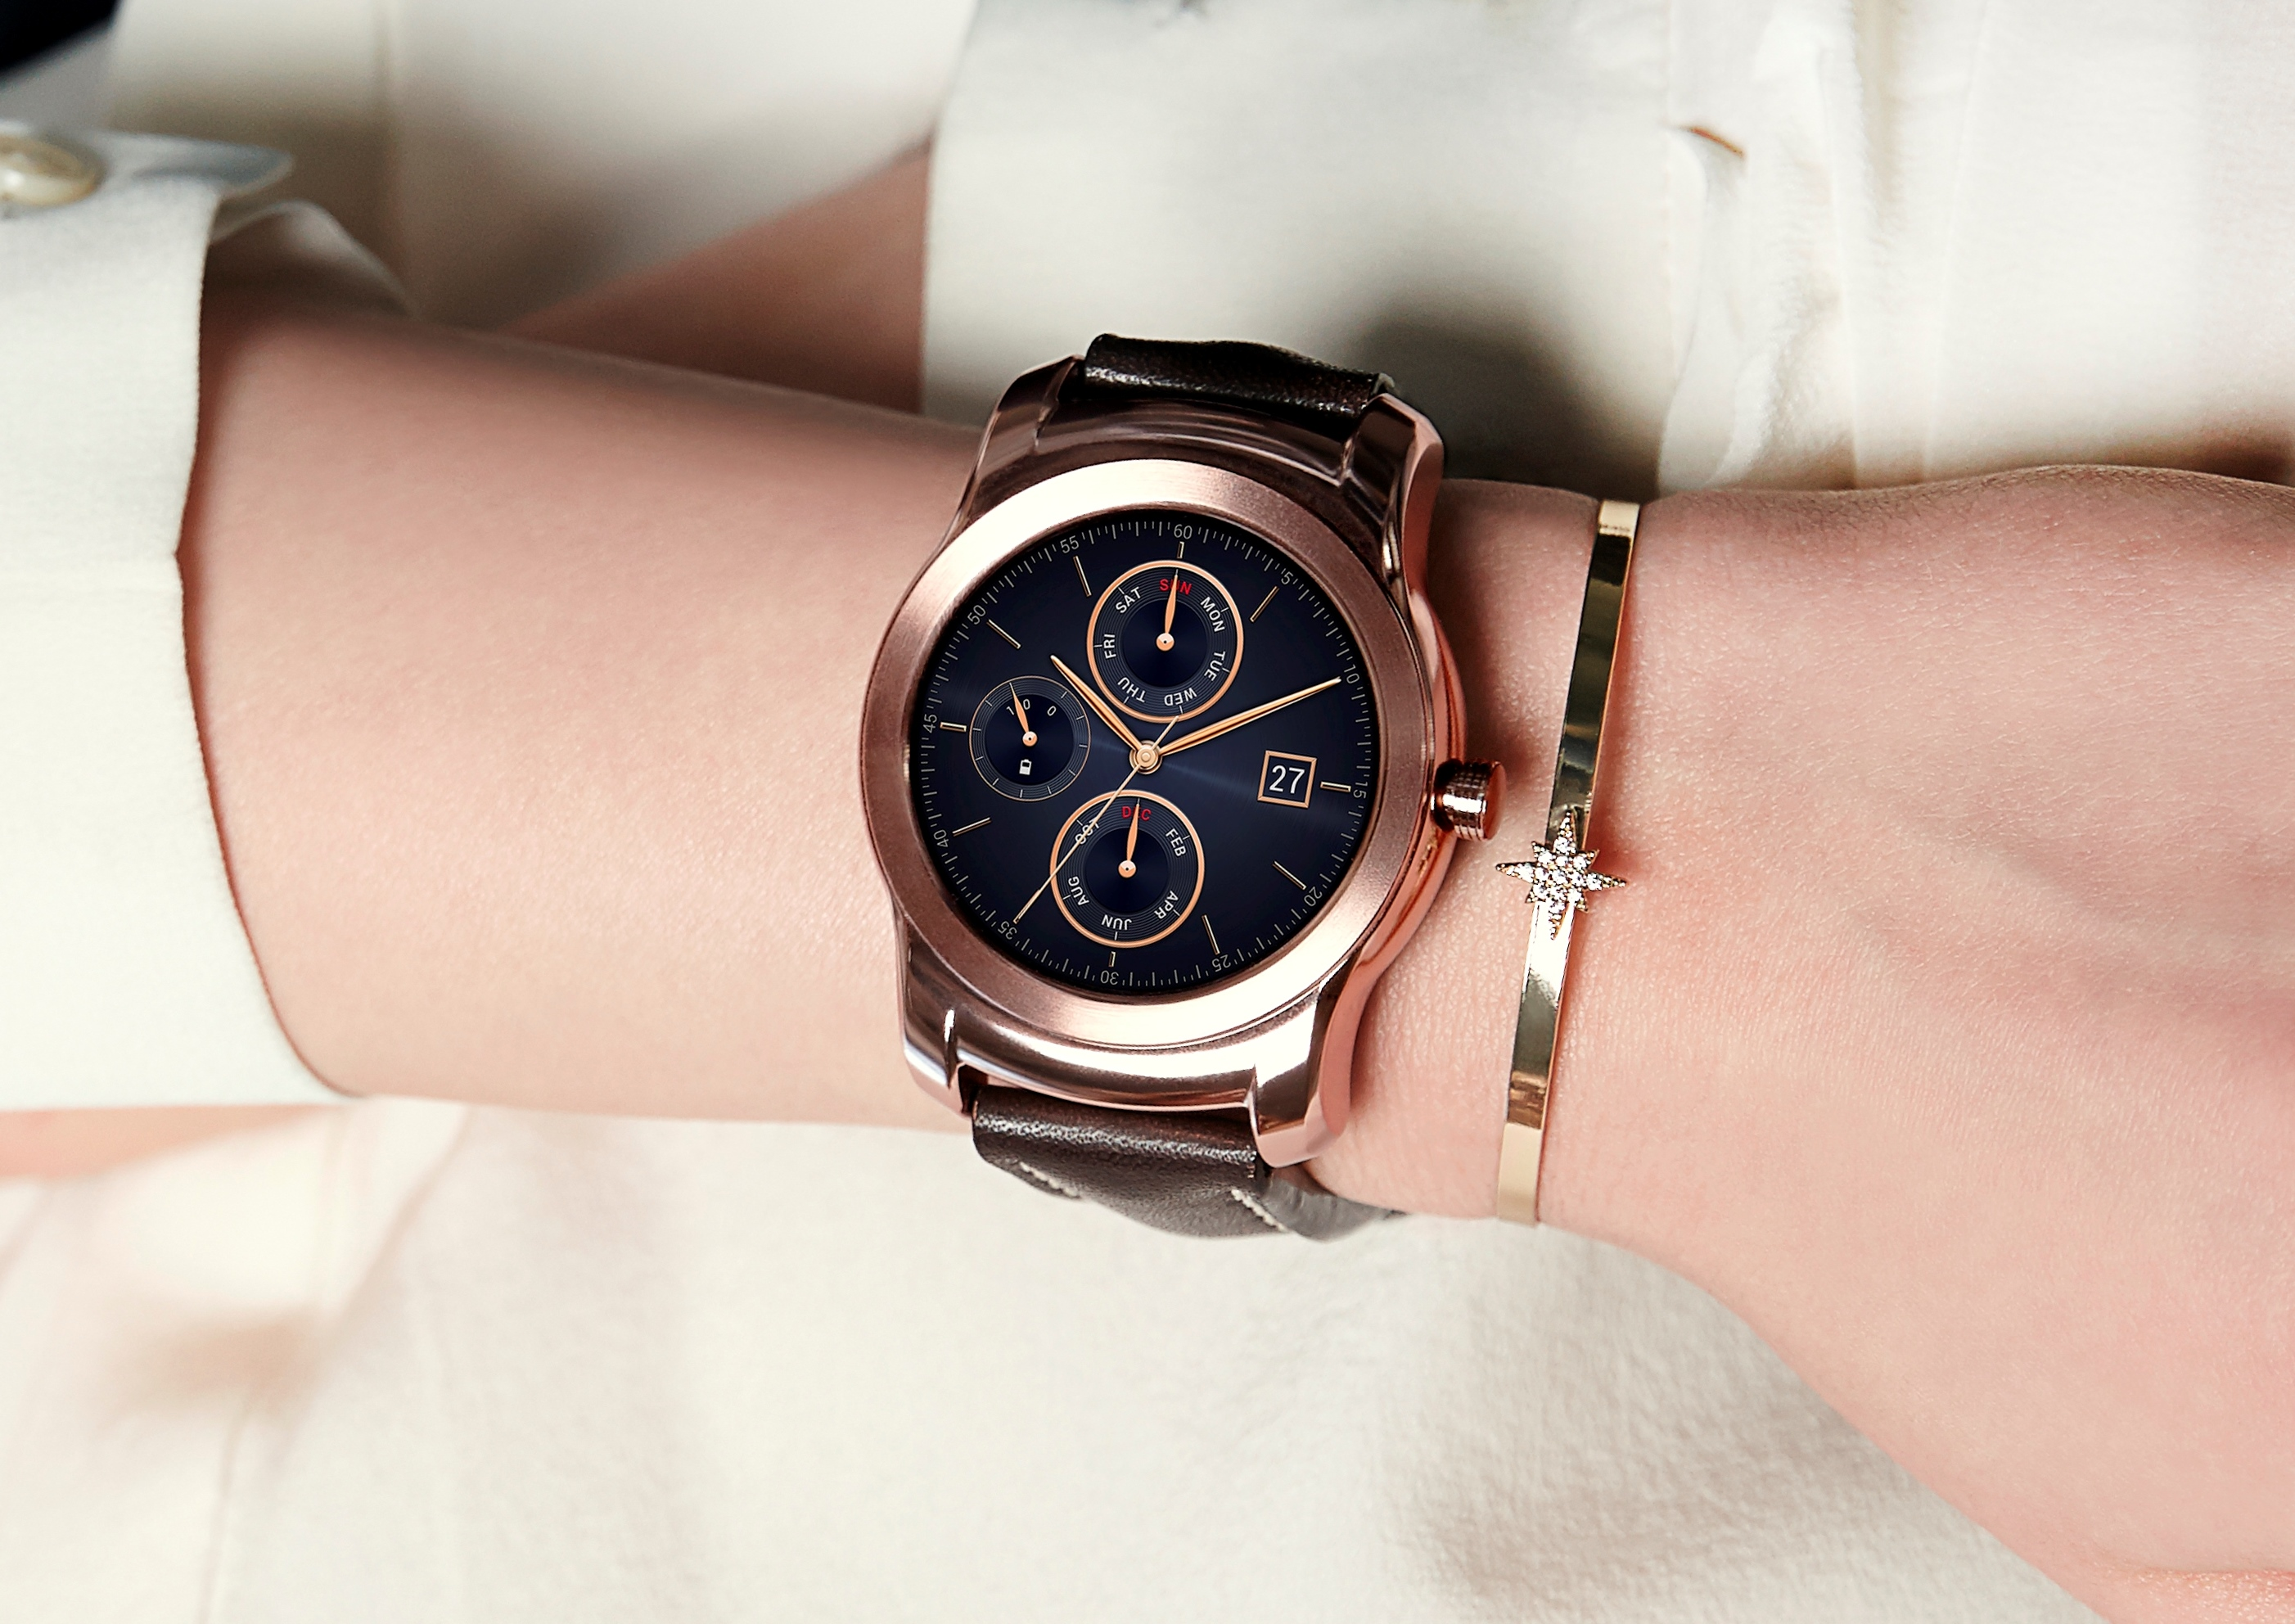 A close-up of a woman's wrist while wearing the Rose Gold LG Watch Urbane and a matching gold bracelet.